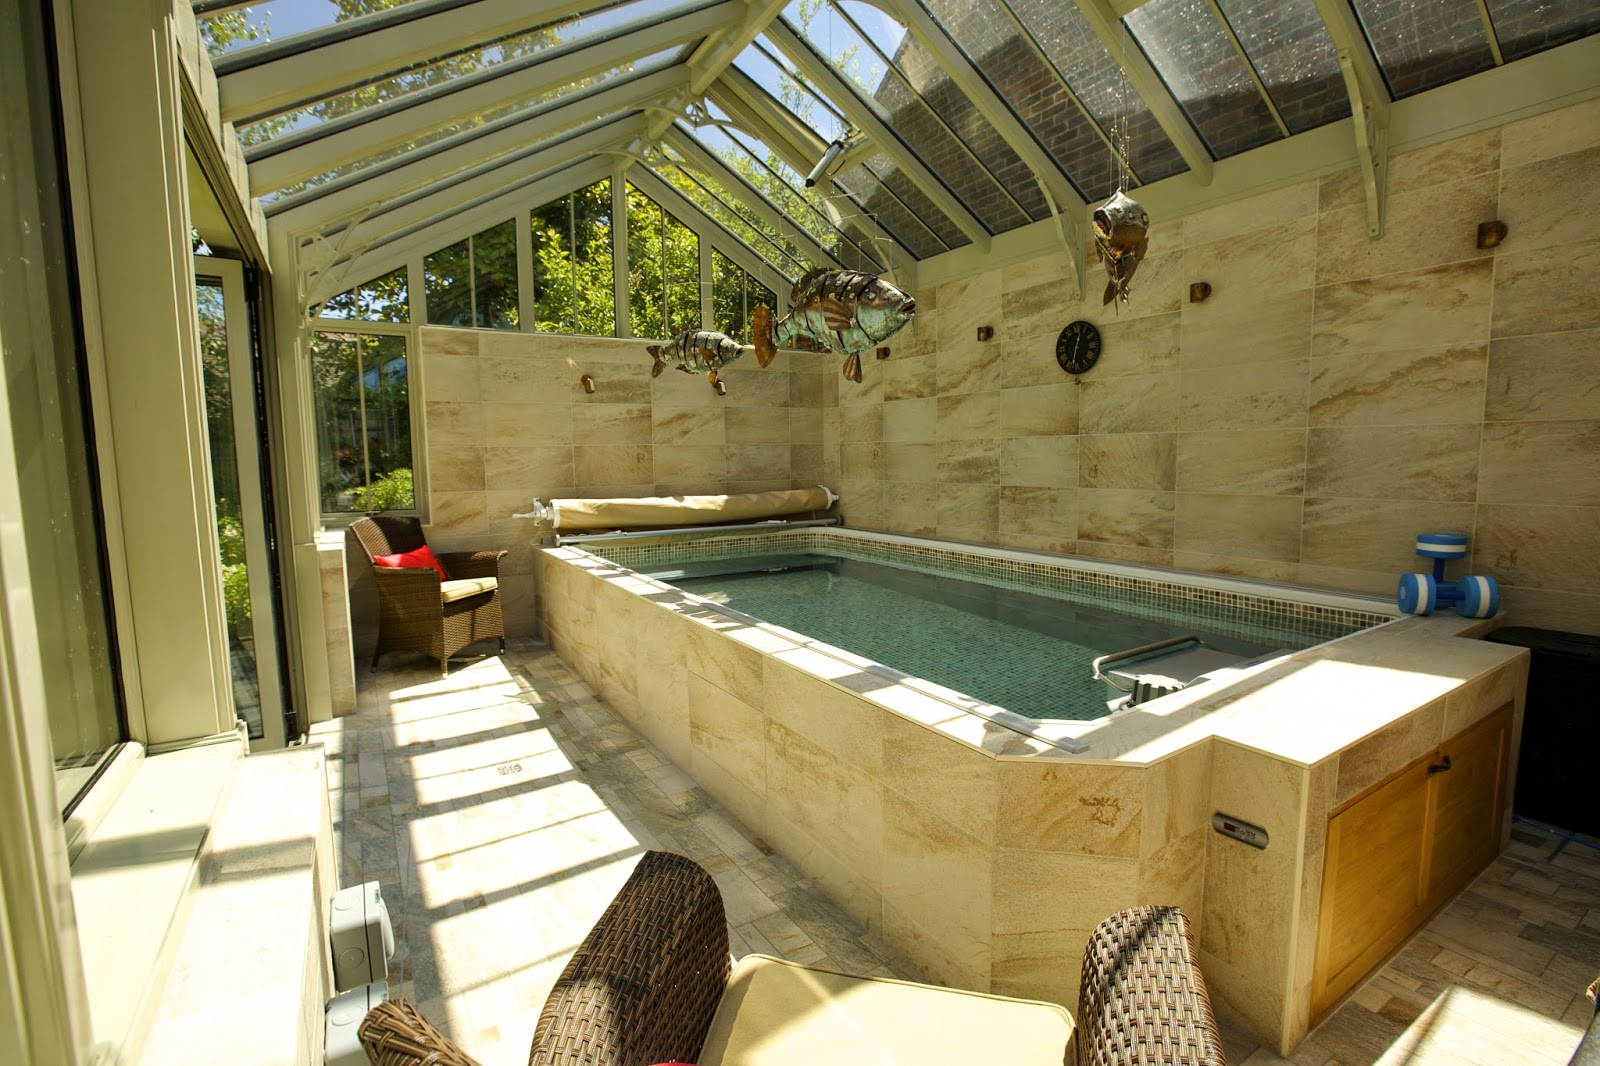 This Endless Pool installation won the Silver for Best Indoor Swimming Pool, UK Pool & Spa Awards, for Home Counties Poos & Hot Tubs.